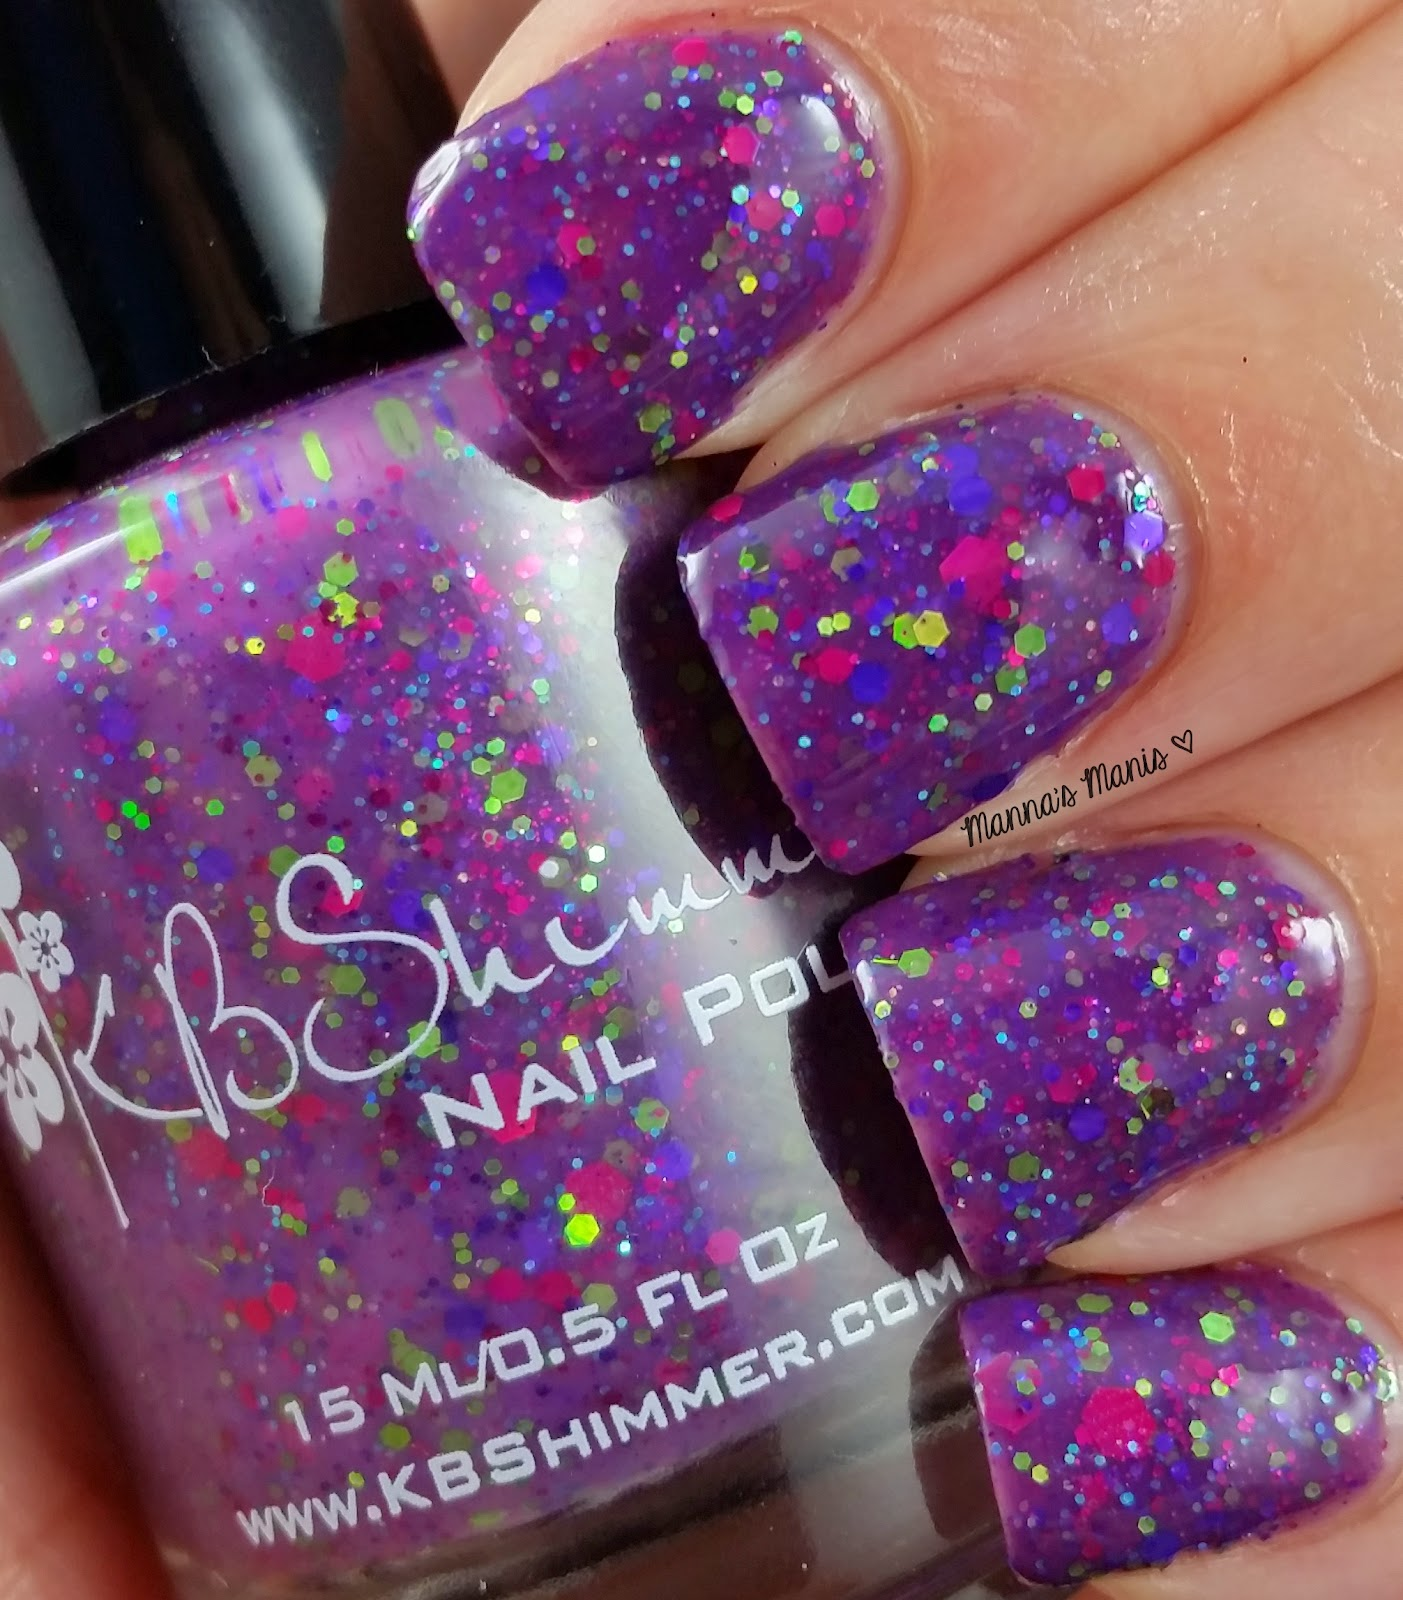 kbshimmer sugar plum faerie, a purple crelly nail polish